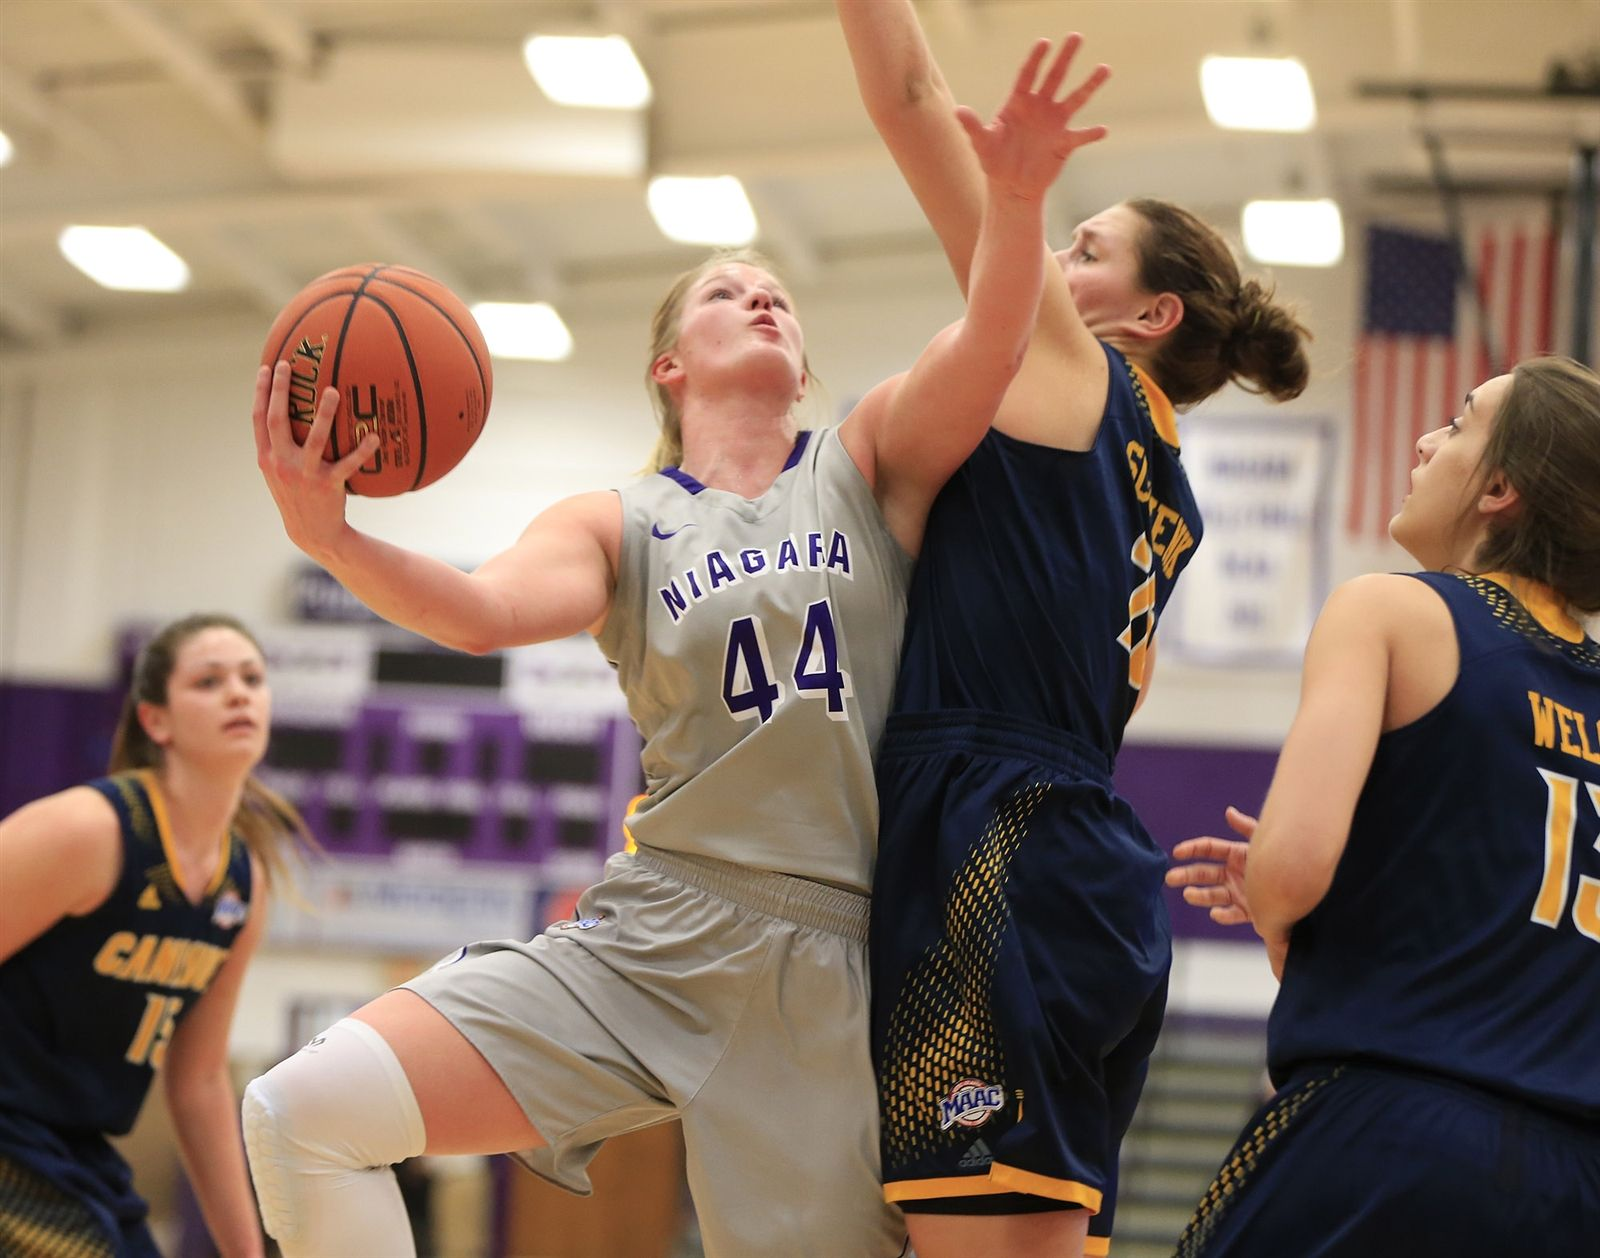 Niagara's Kaylee Stroemple drives to the basket against Canisius during first-half action at the Gallagher Center on Thursday, Jan. 28, 2016.